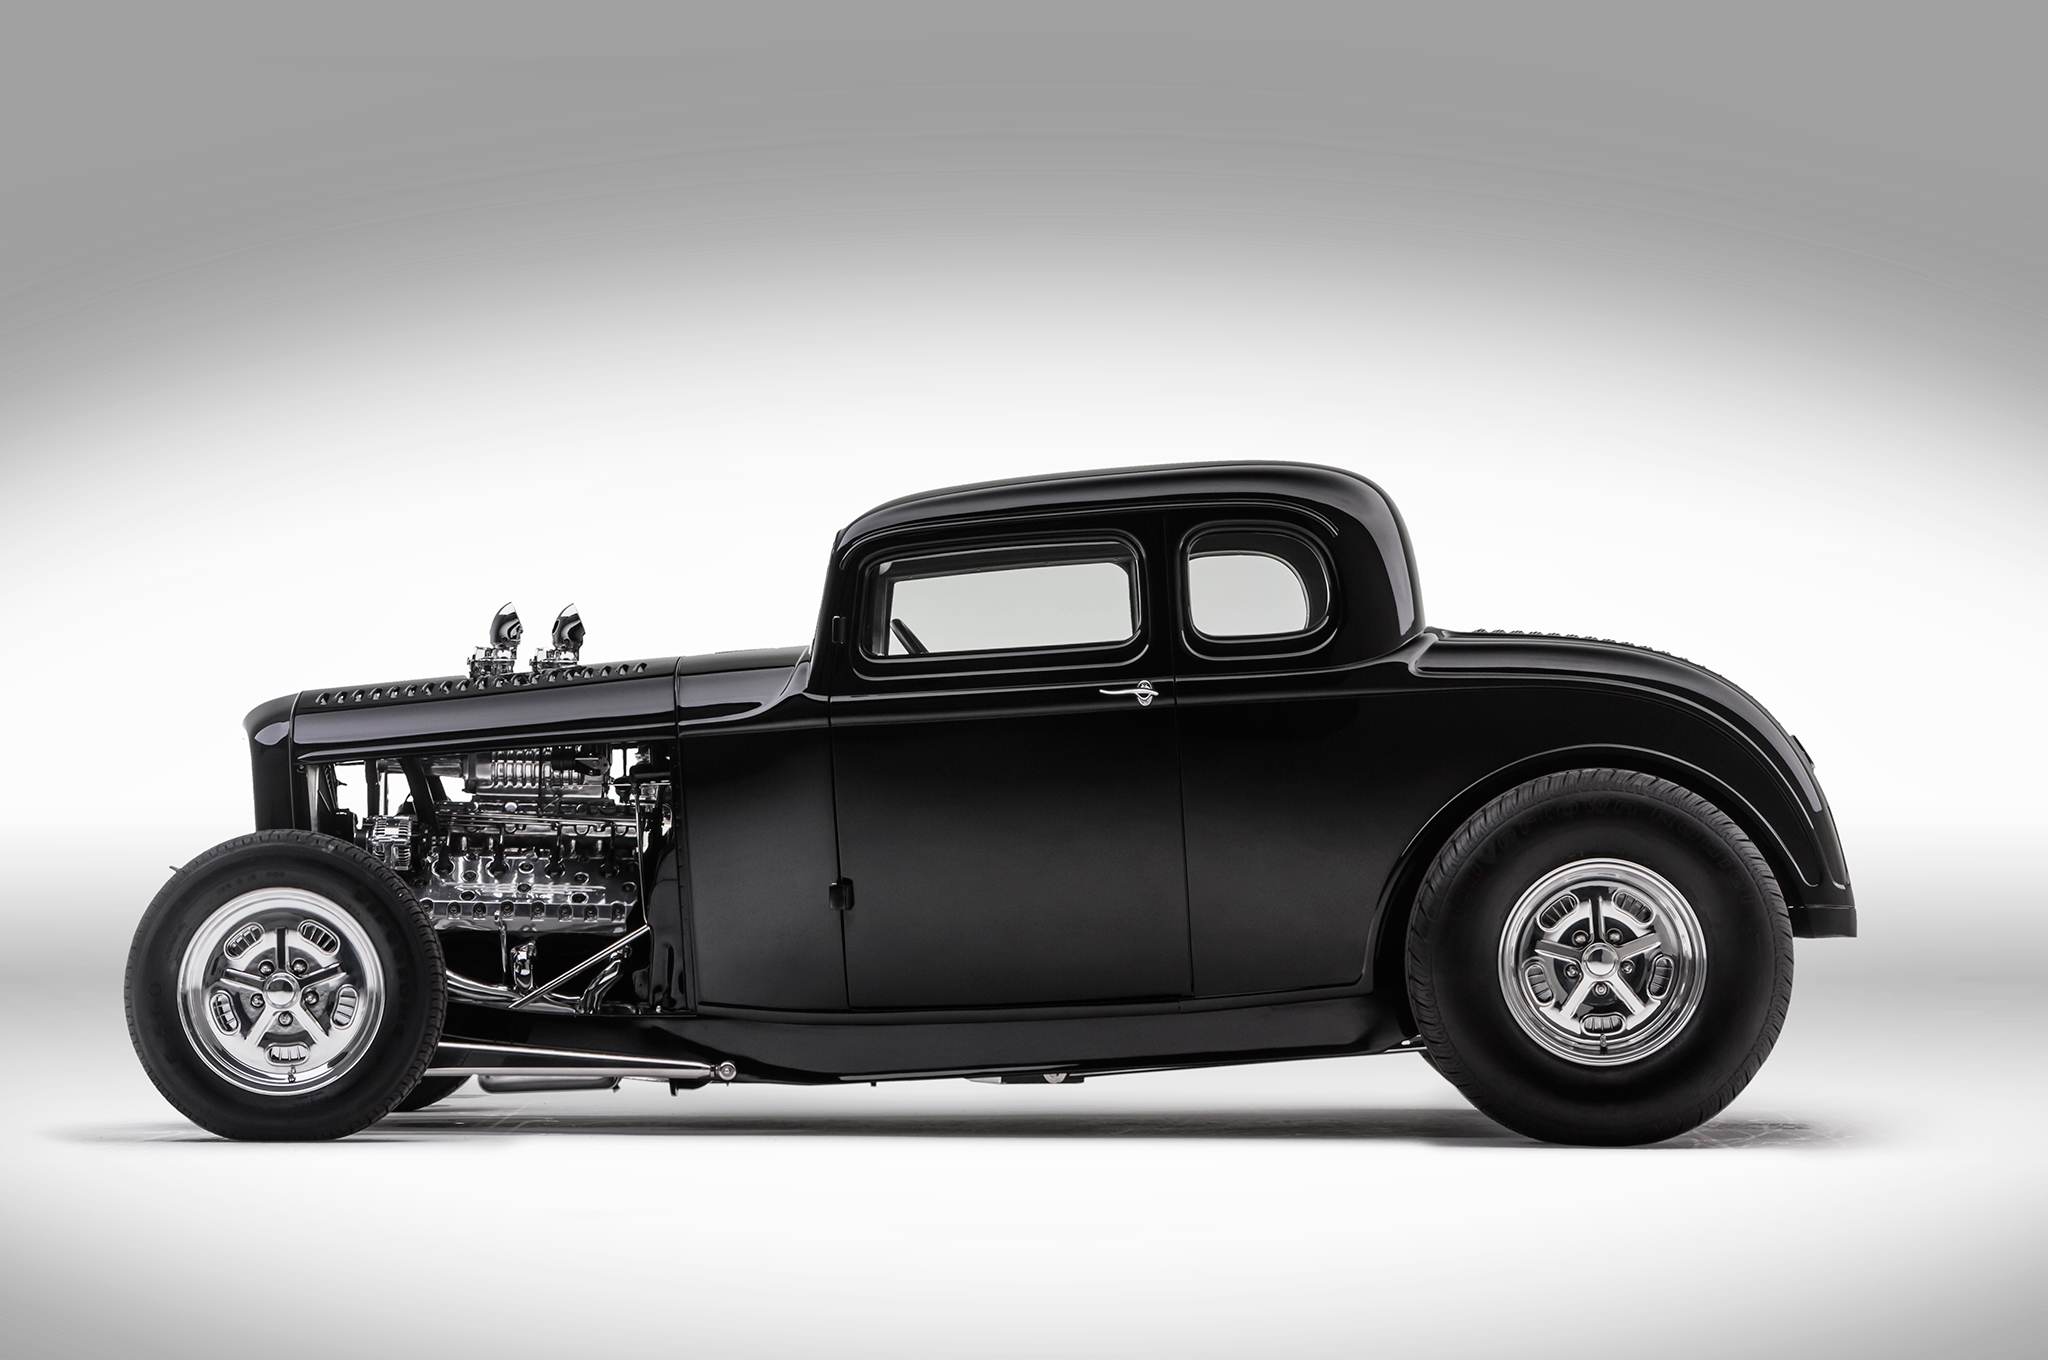 1932 Ford Coupe S Blown Flathead And Wild Chop Hot Rod